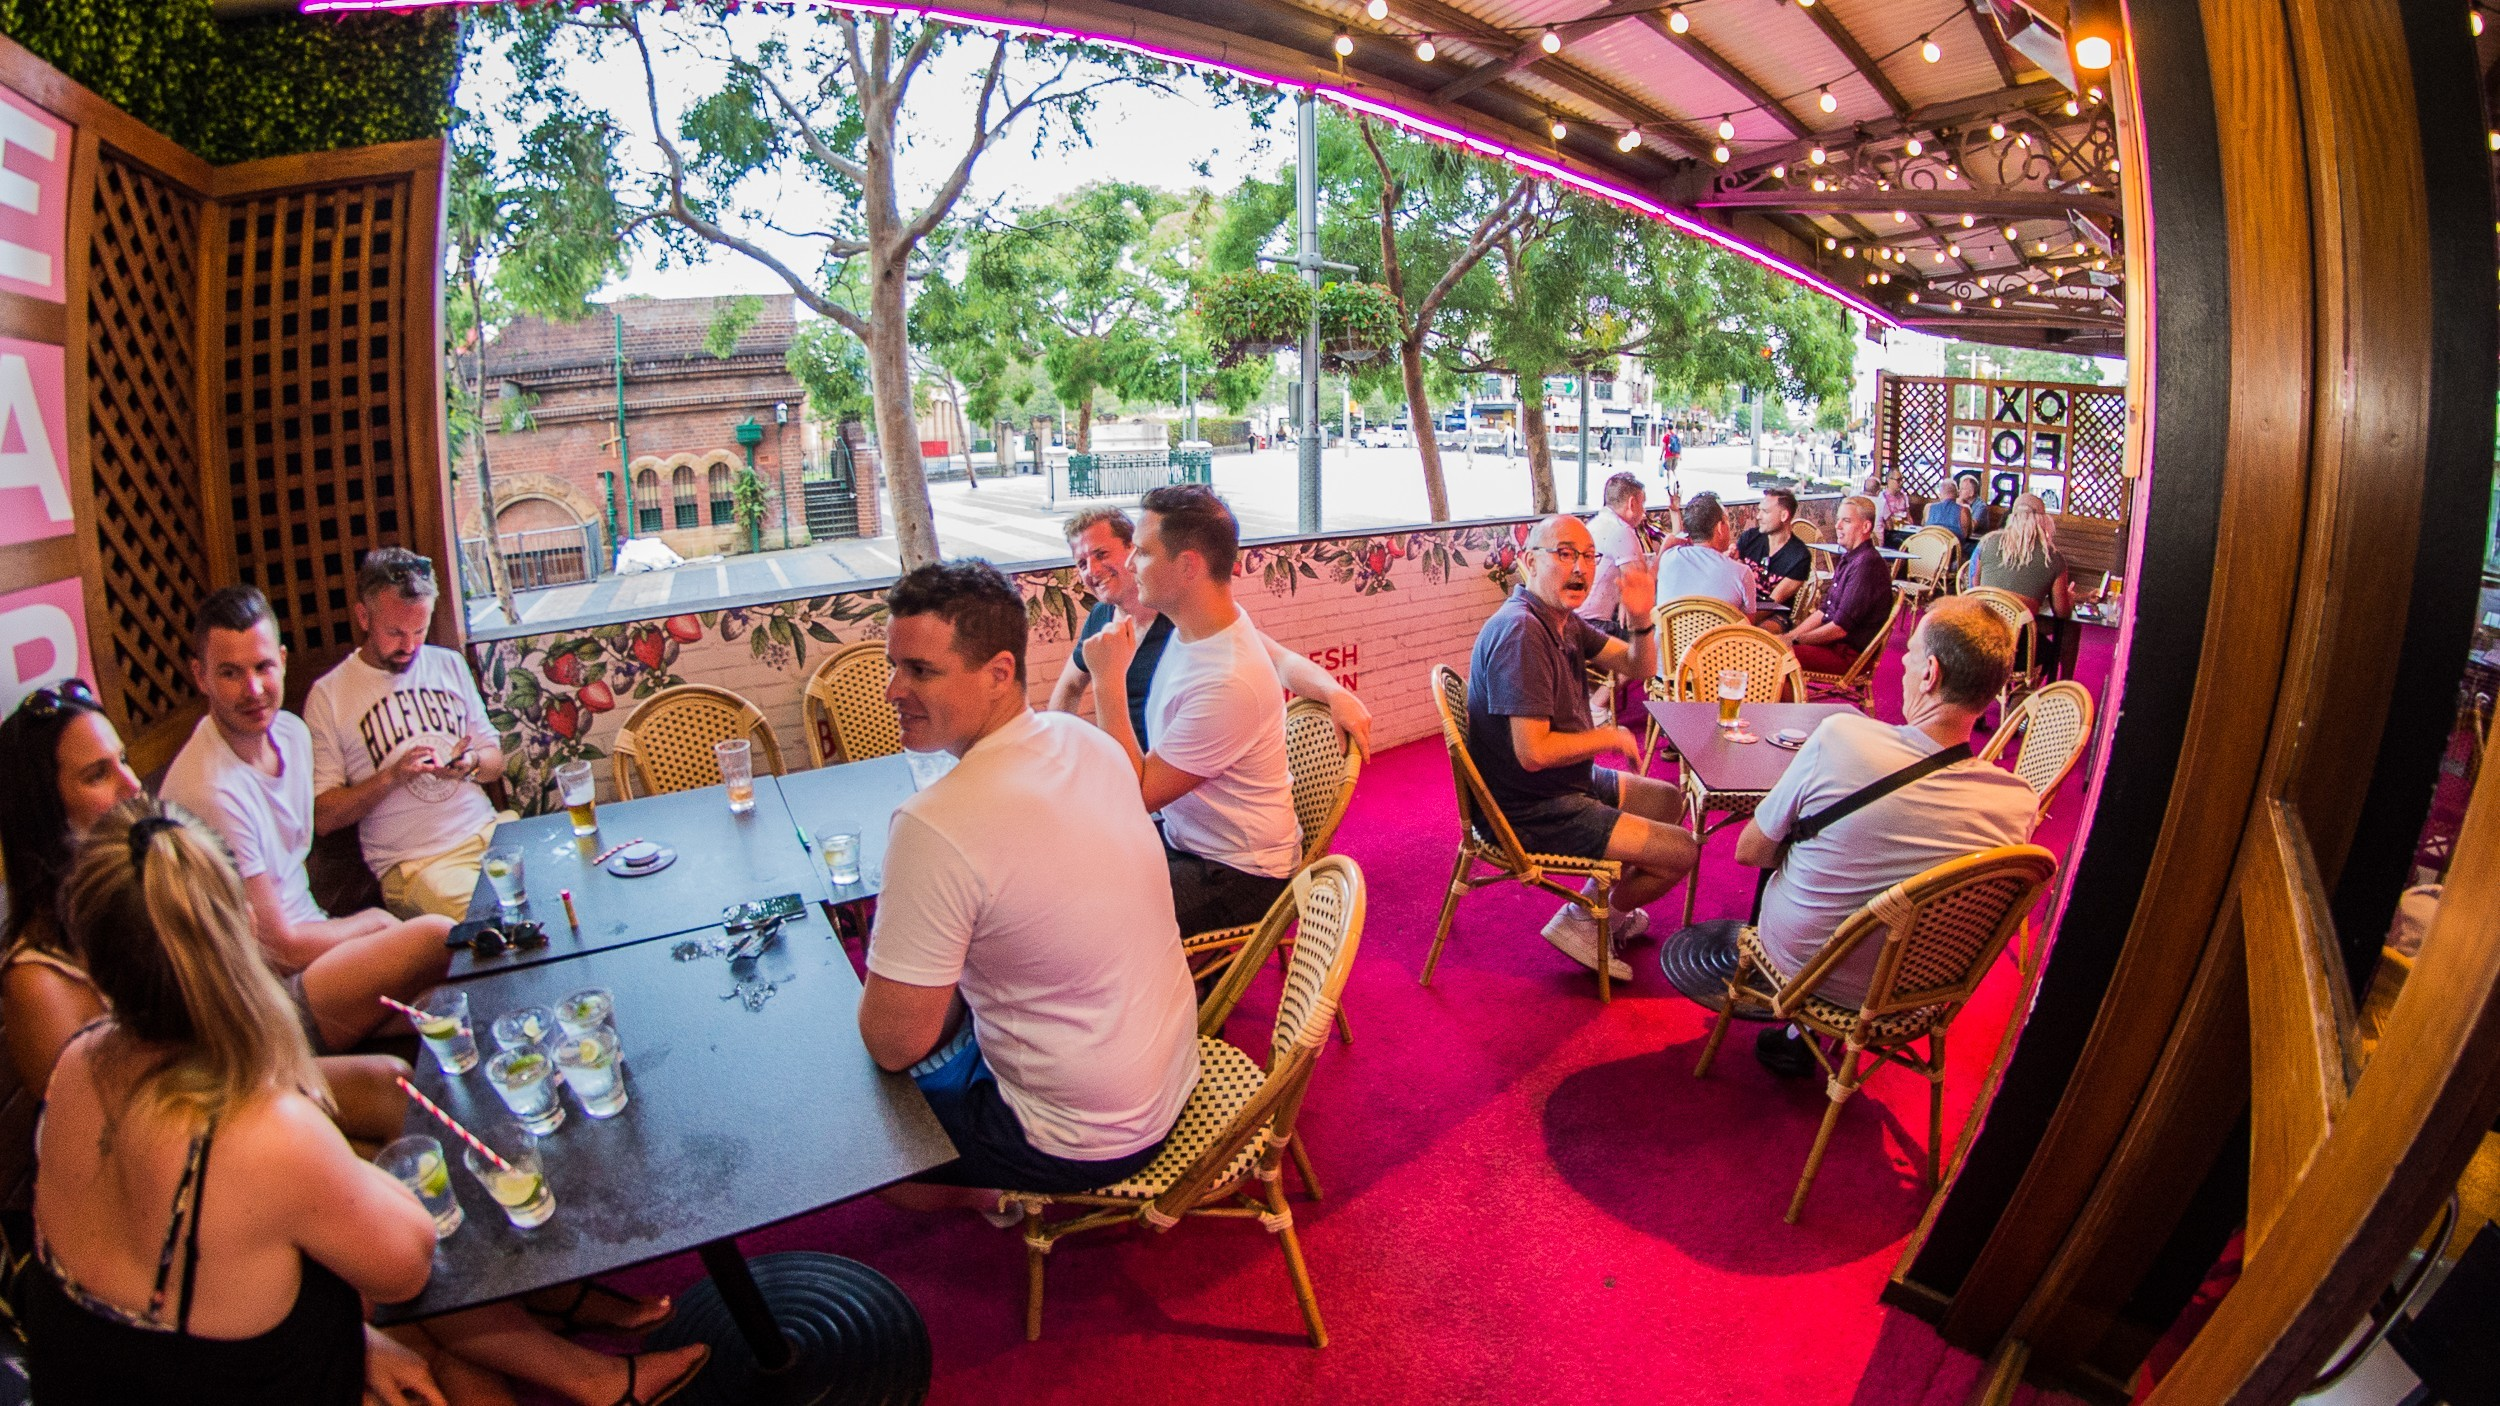 People gather in the outdoor seating area at the Oxford Hotel.